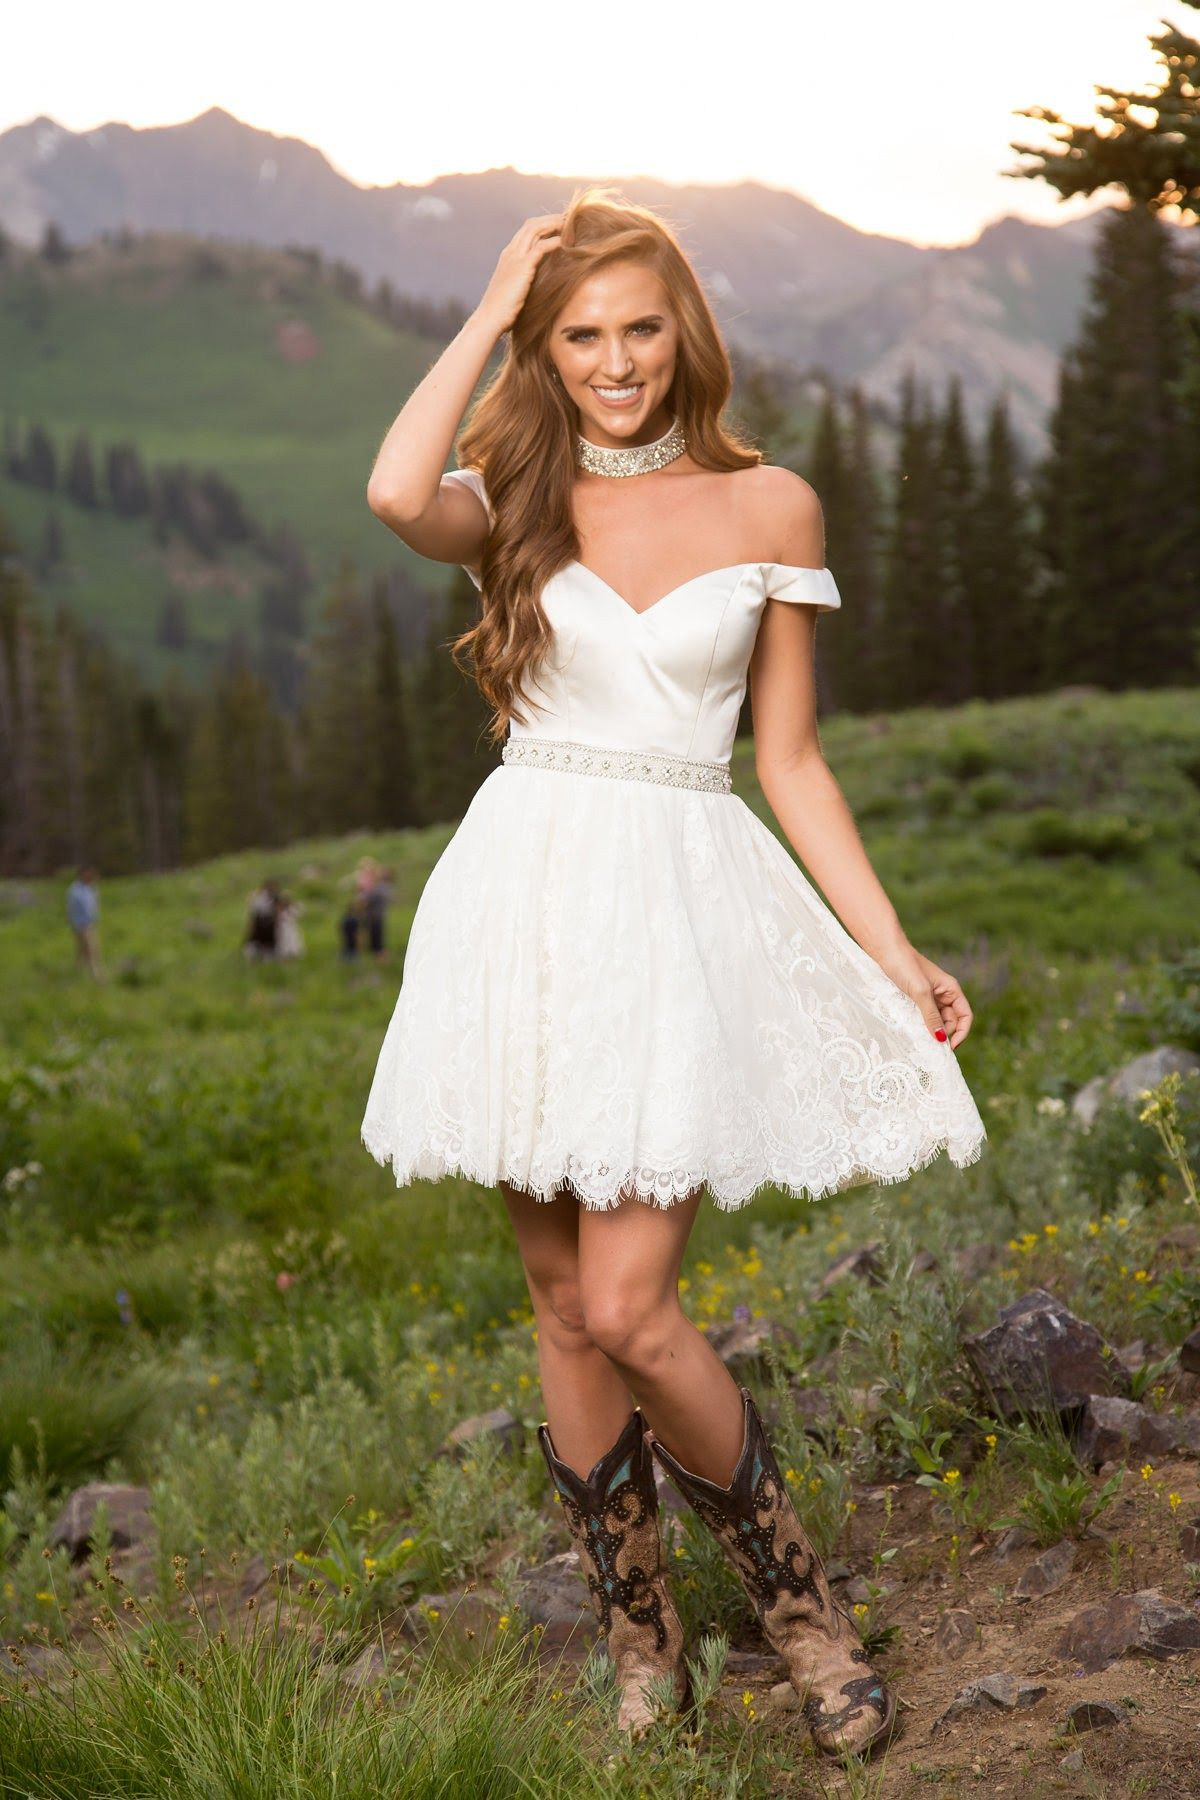 Sherri Hill White Short Lace Dress Off The Shoulder With Chocker And Cowboy Boots Ypsilon Dresses Prom White Lace Dress Short Short Lace Dress Cowgirl Dresses [ 1800 x 1200 Pixel ]